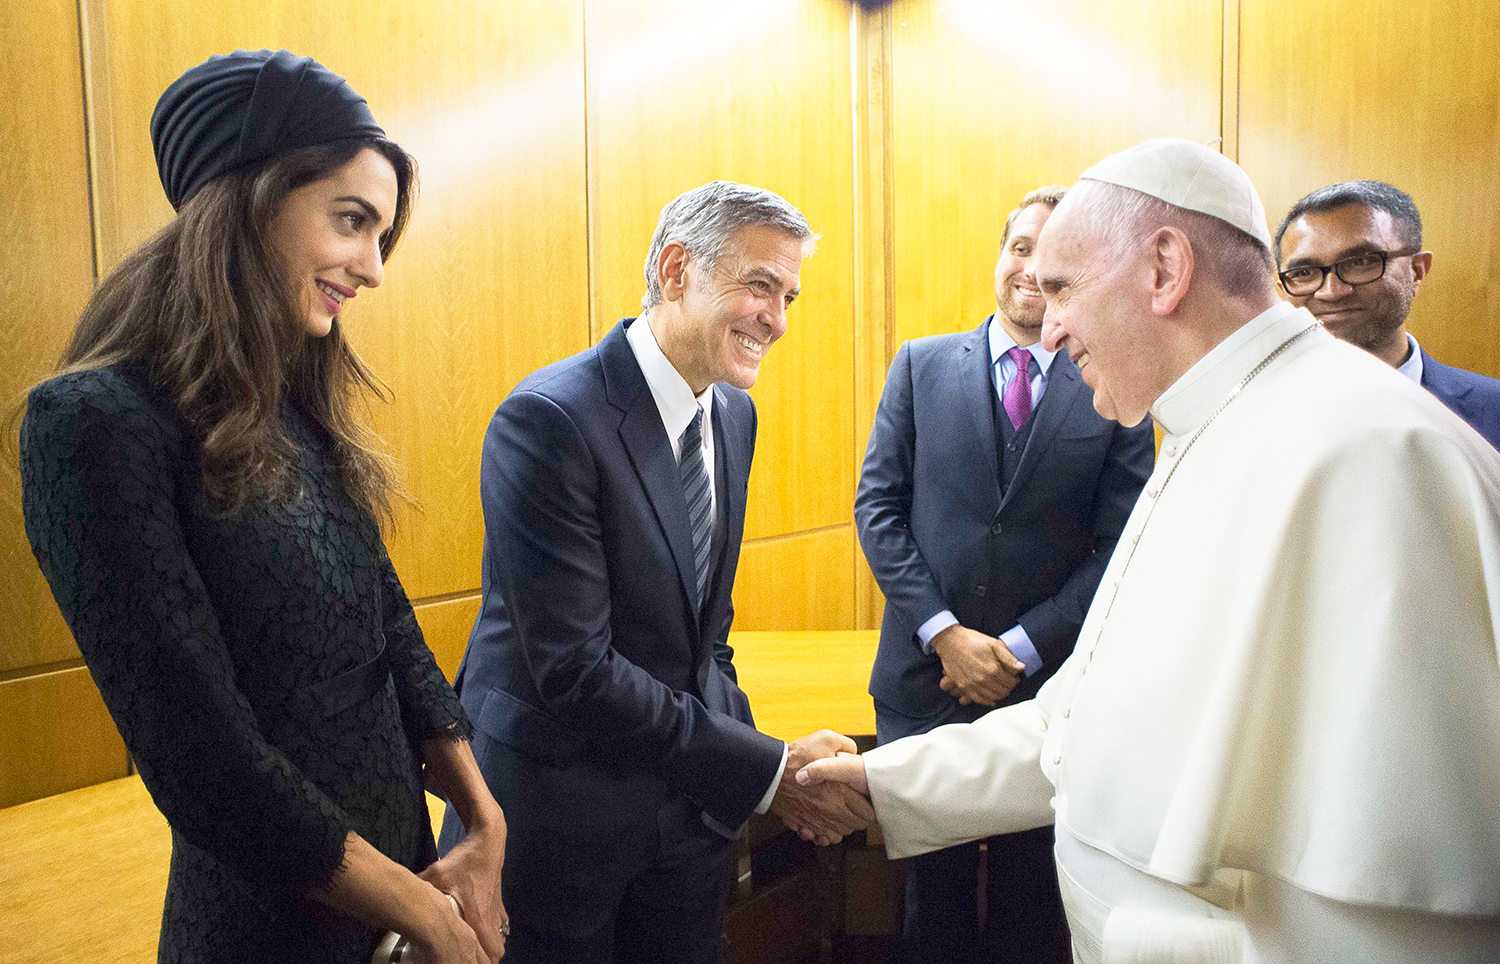 George Clooney, Amal Clooney and the Pope